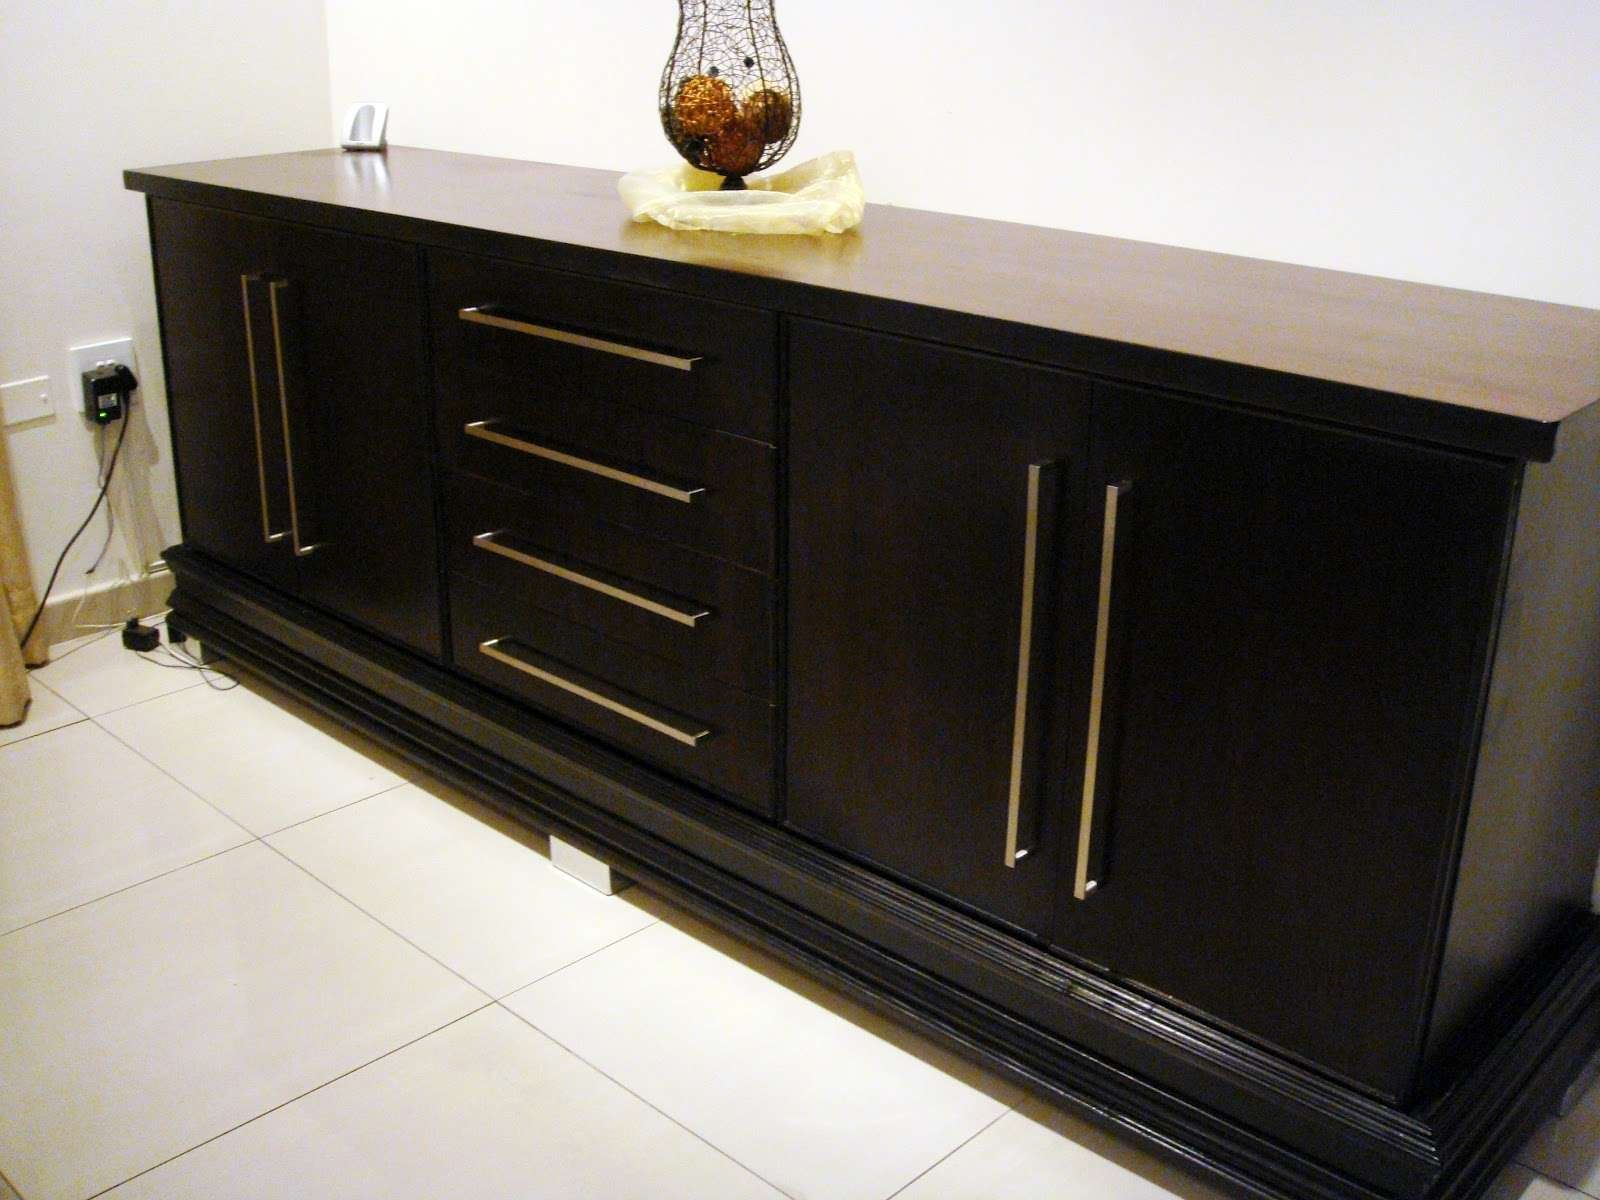 Dining Room Bar Sideboard | Latest Home Decor And Design Regarding Dining Room With Sideboards (View 6 of 20)